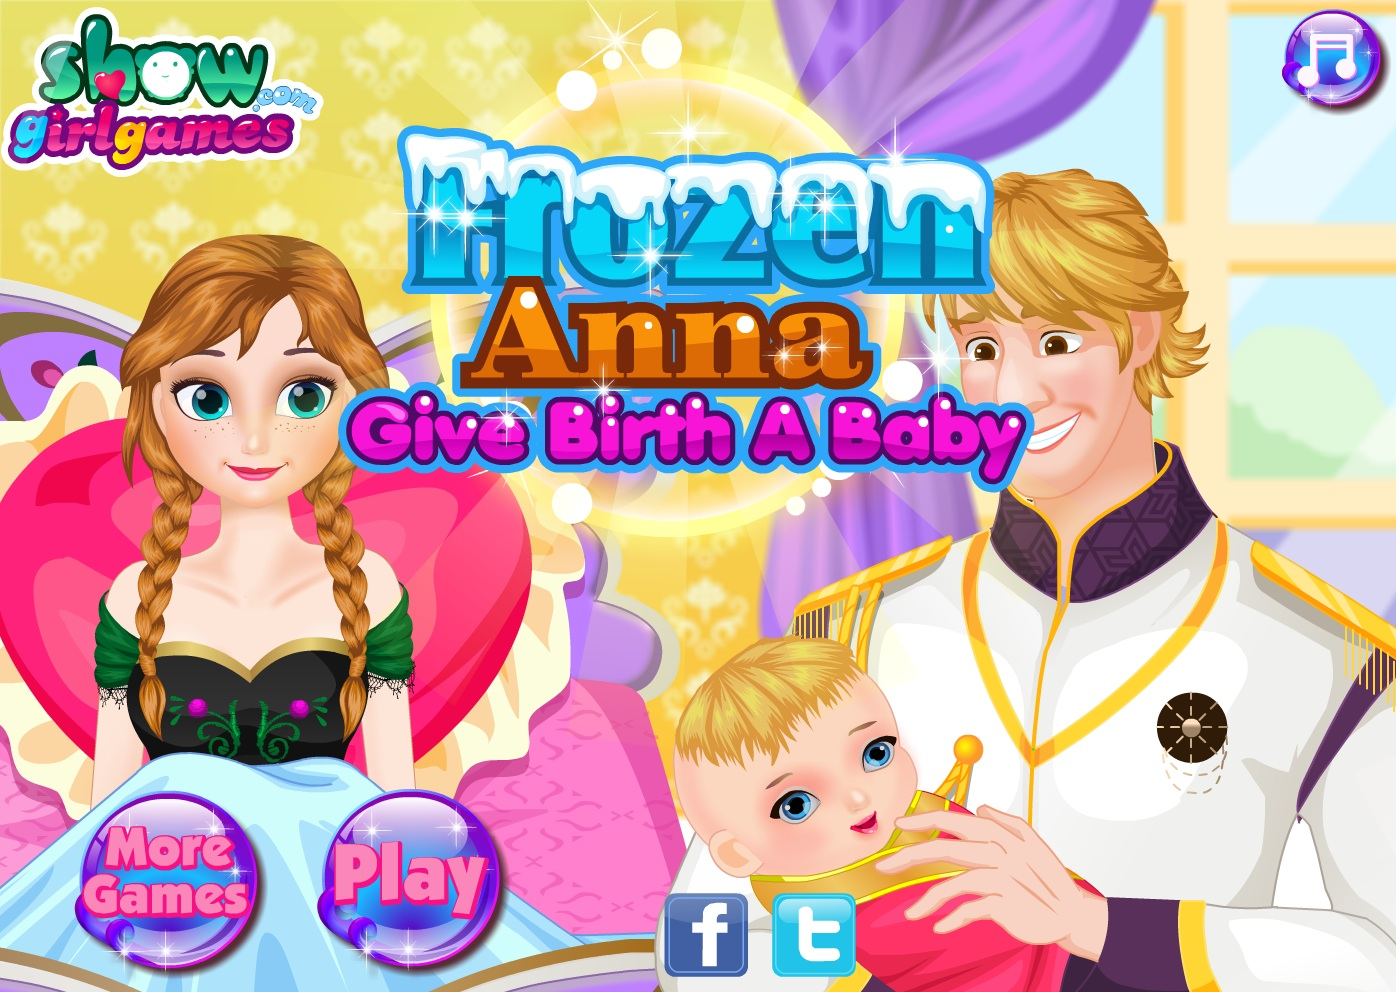 Uncategorized Frozen Games For Kids the frozen games online you never want your kids to play that playing never